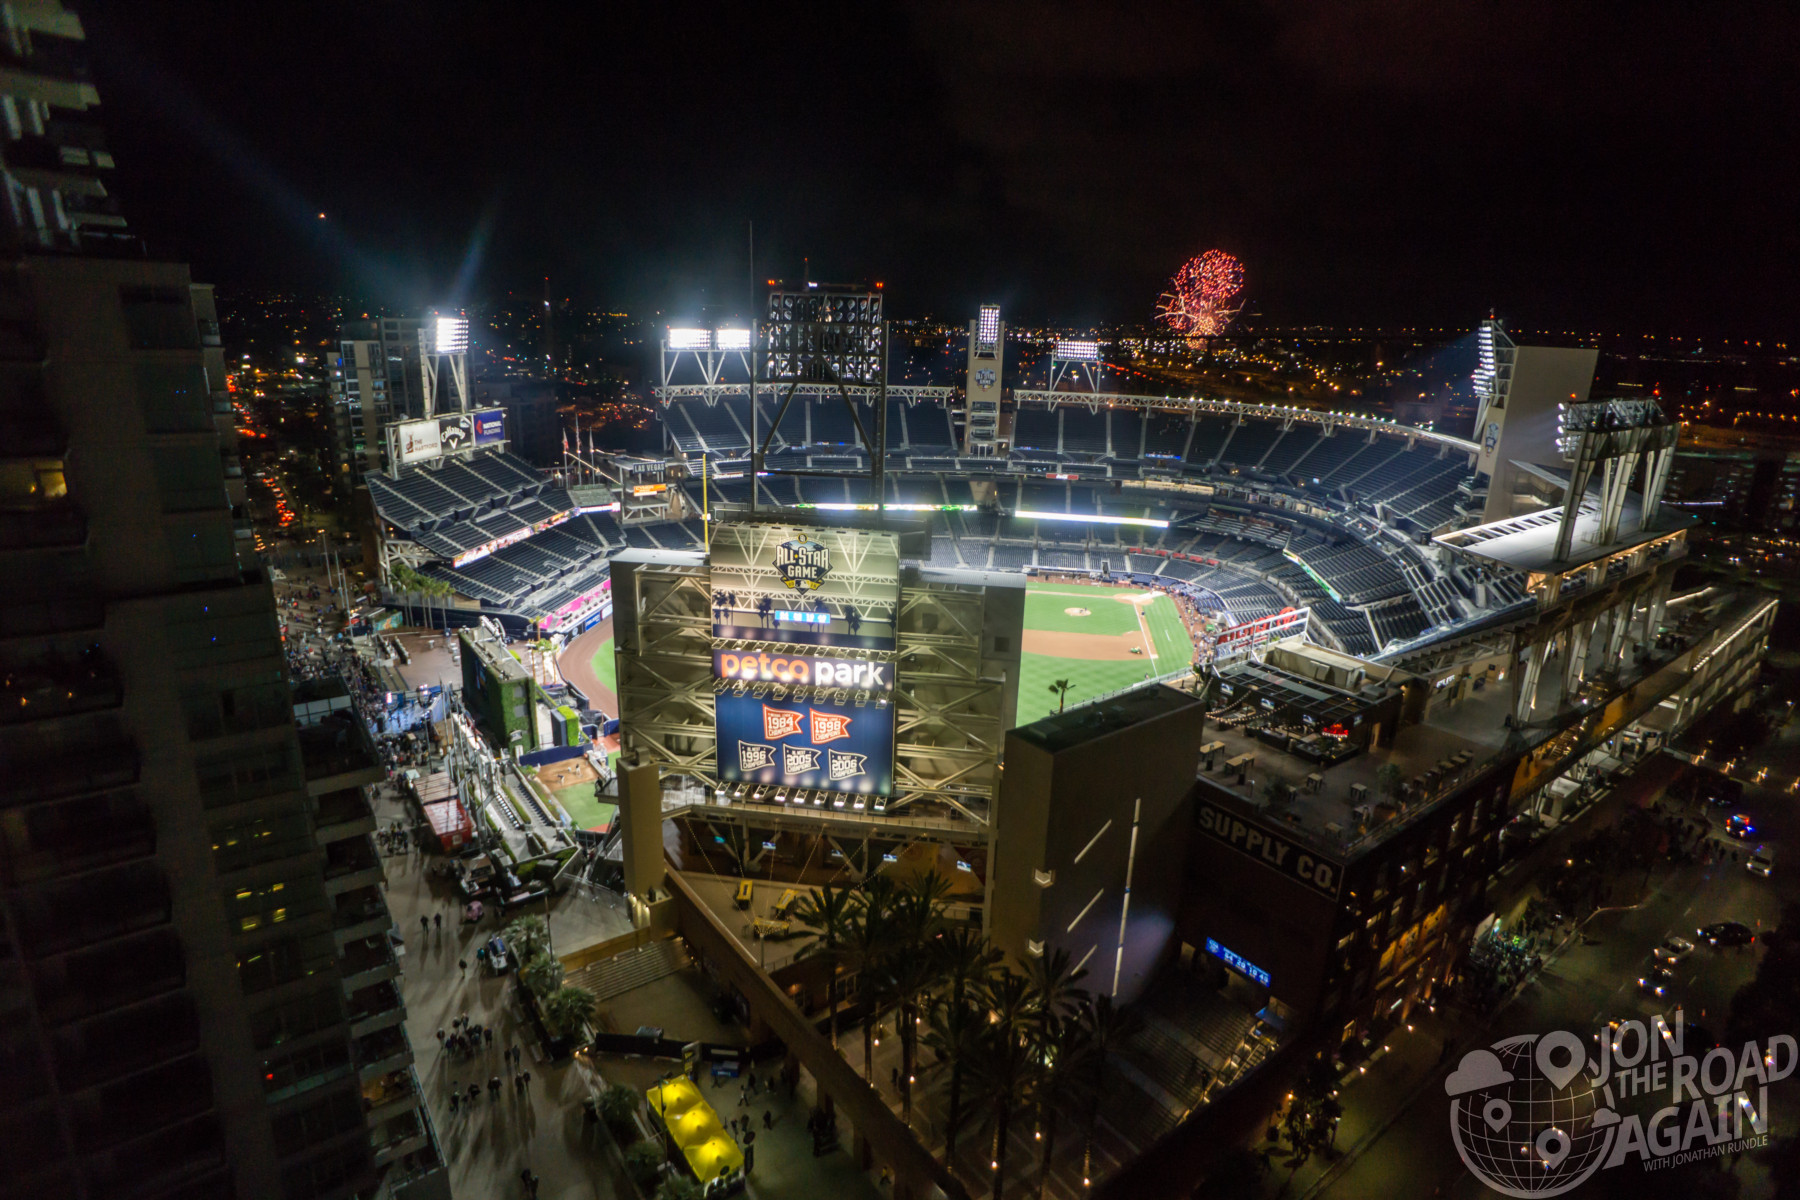 Petco Park at night